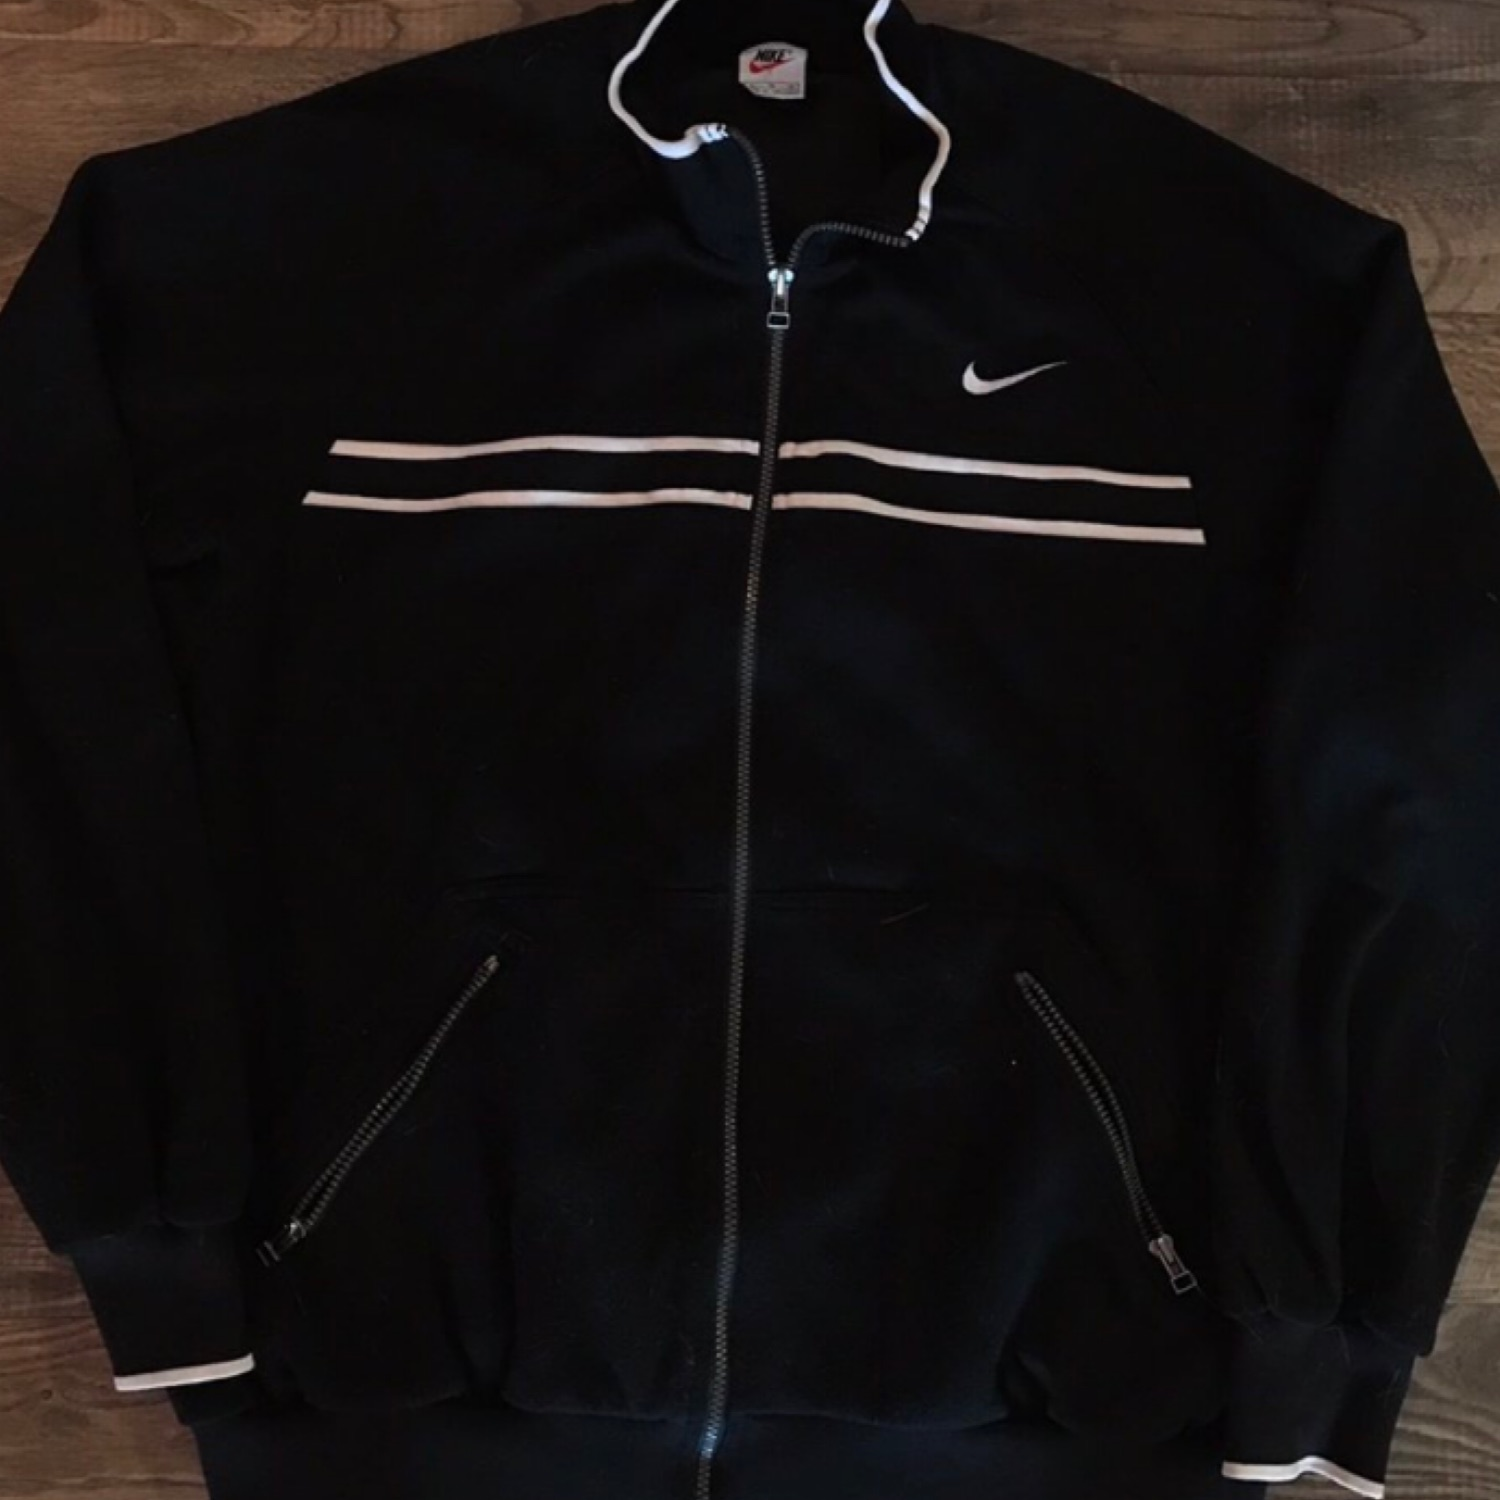 nike shirt zipper